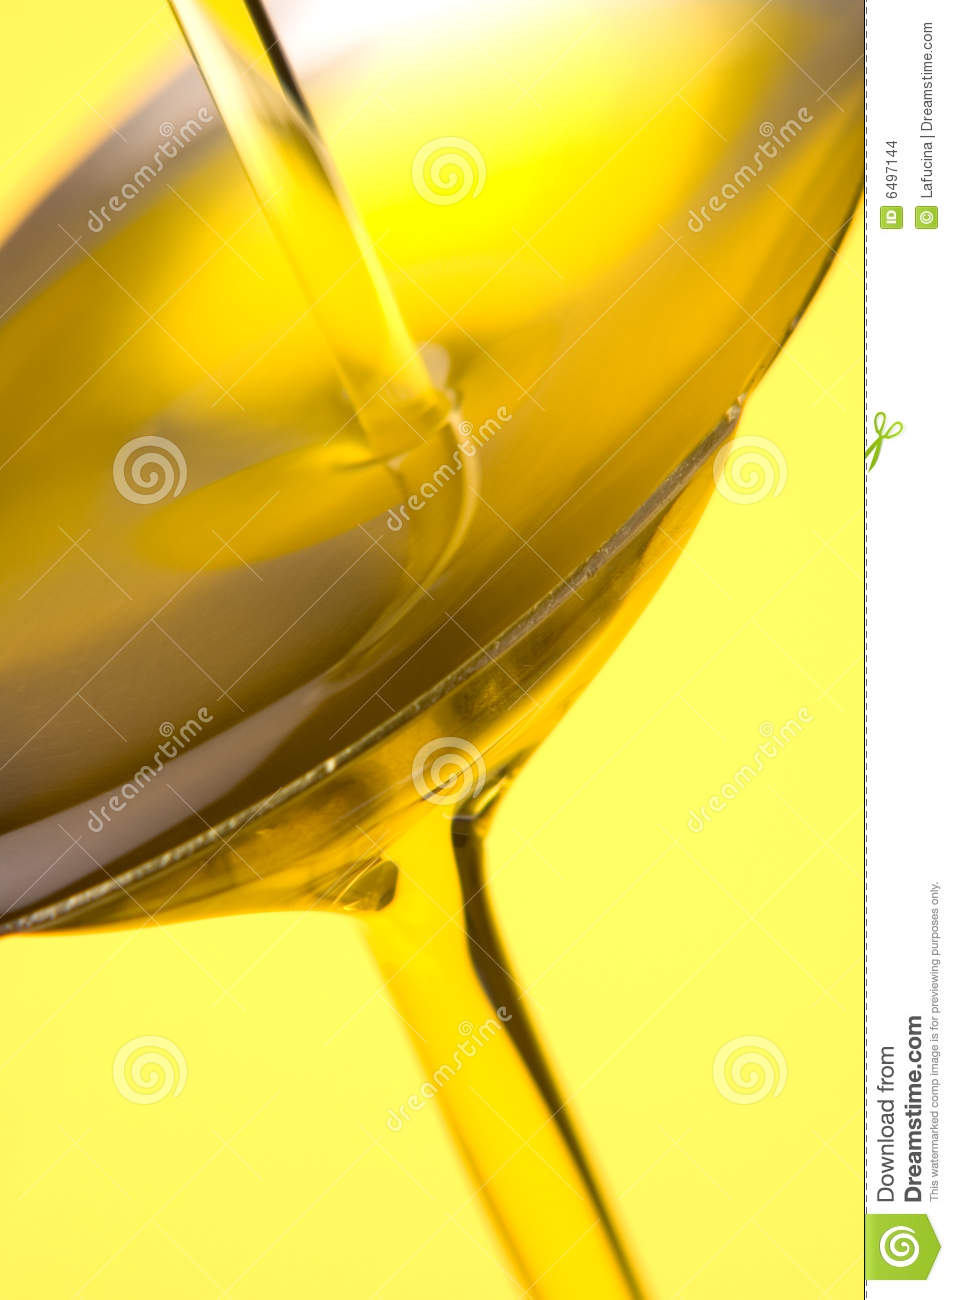 Olive oil stock photo  Image of sunny, italian, cusine - 6497144